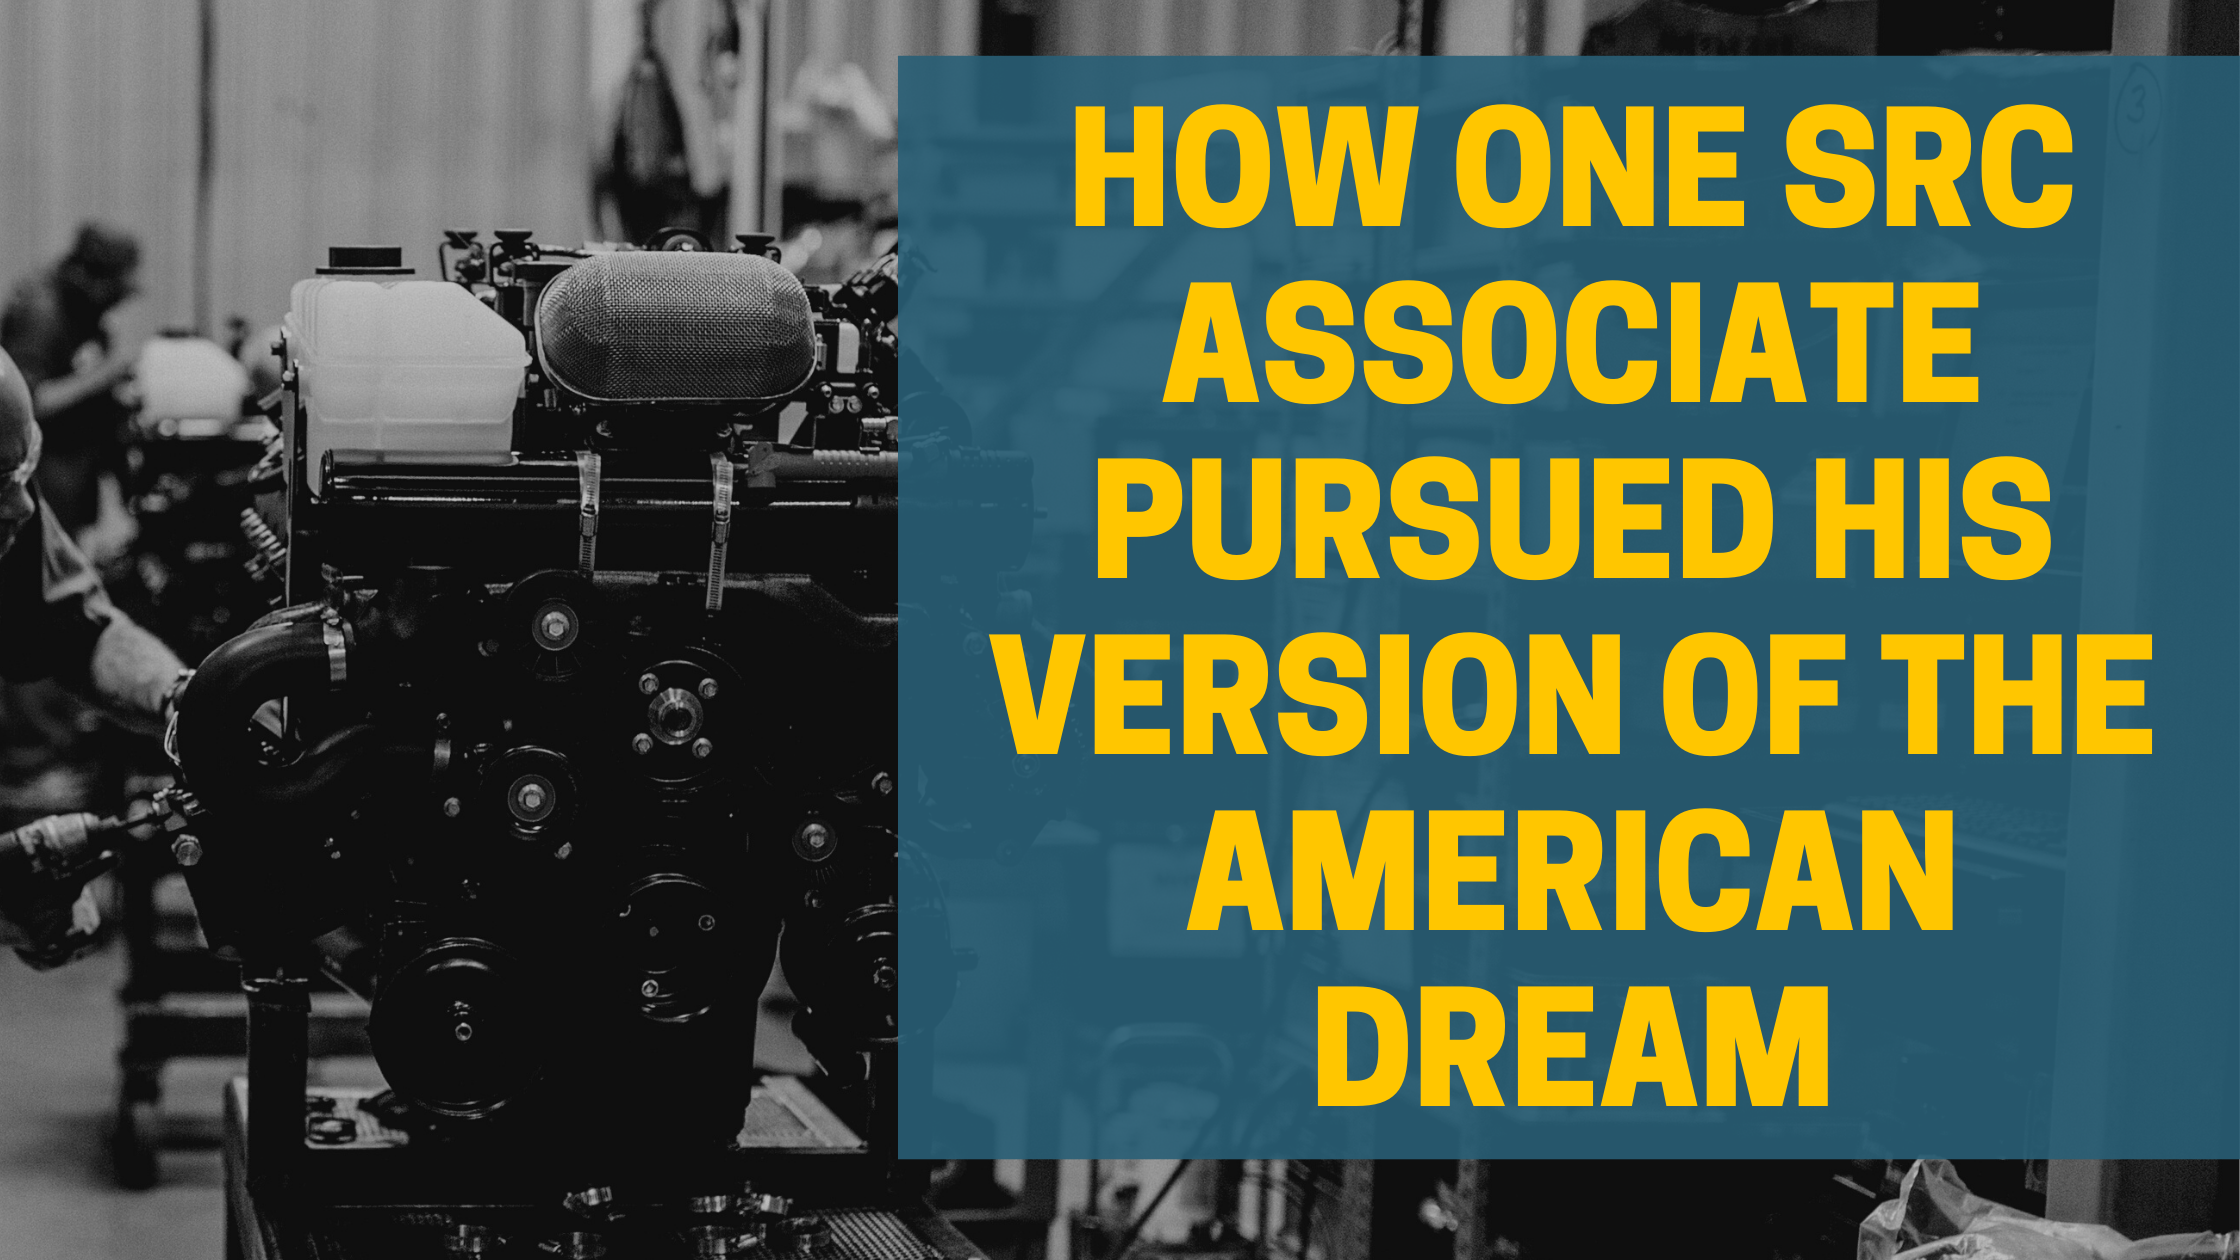 How One SRC Associate Pursued His Version of the American Dream